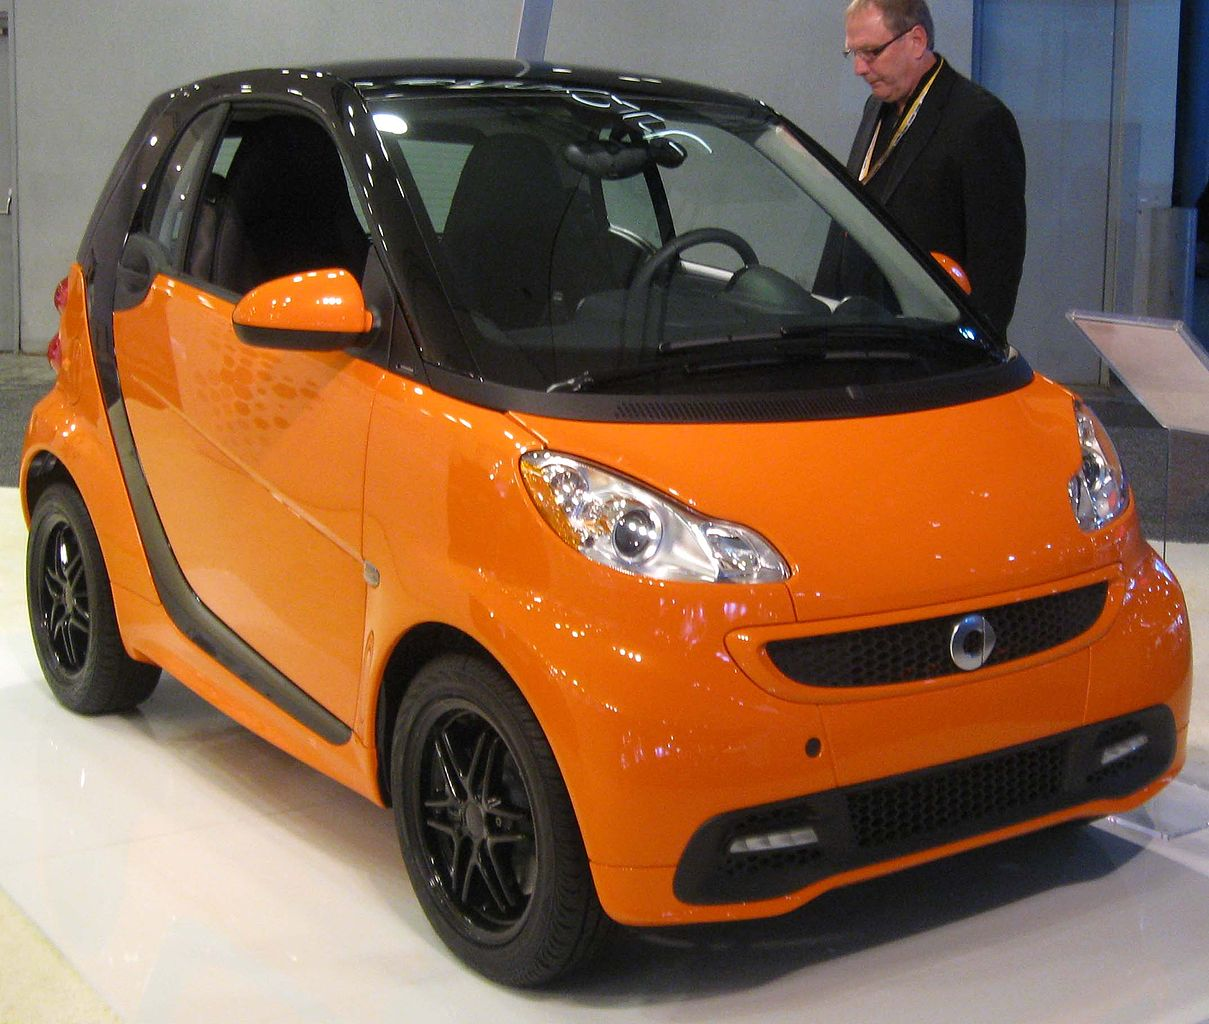 file 2013 smart fortwo 2012 nyias jpg wikipedia. Black Bedroom Furniture Sets. Home Design Ideas